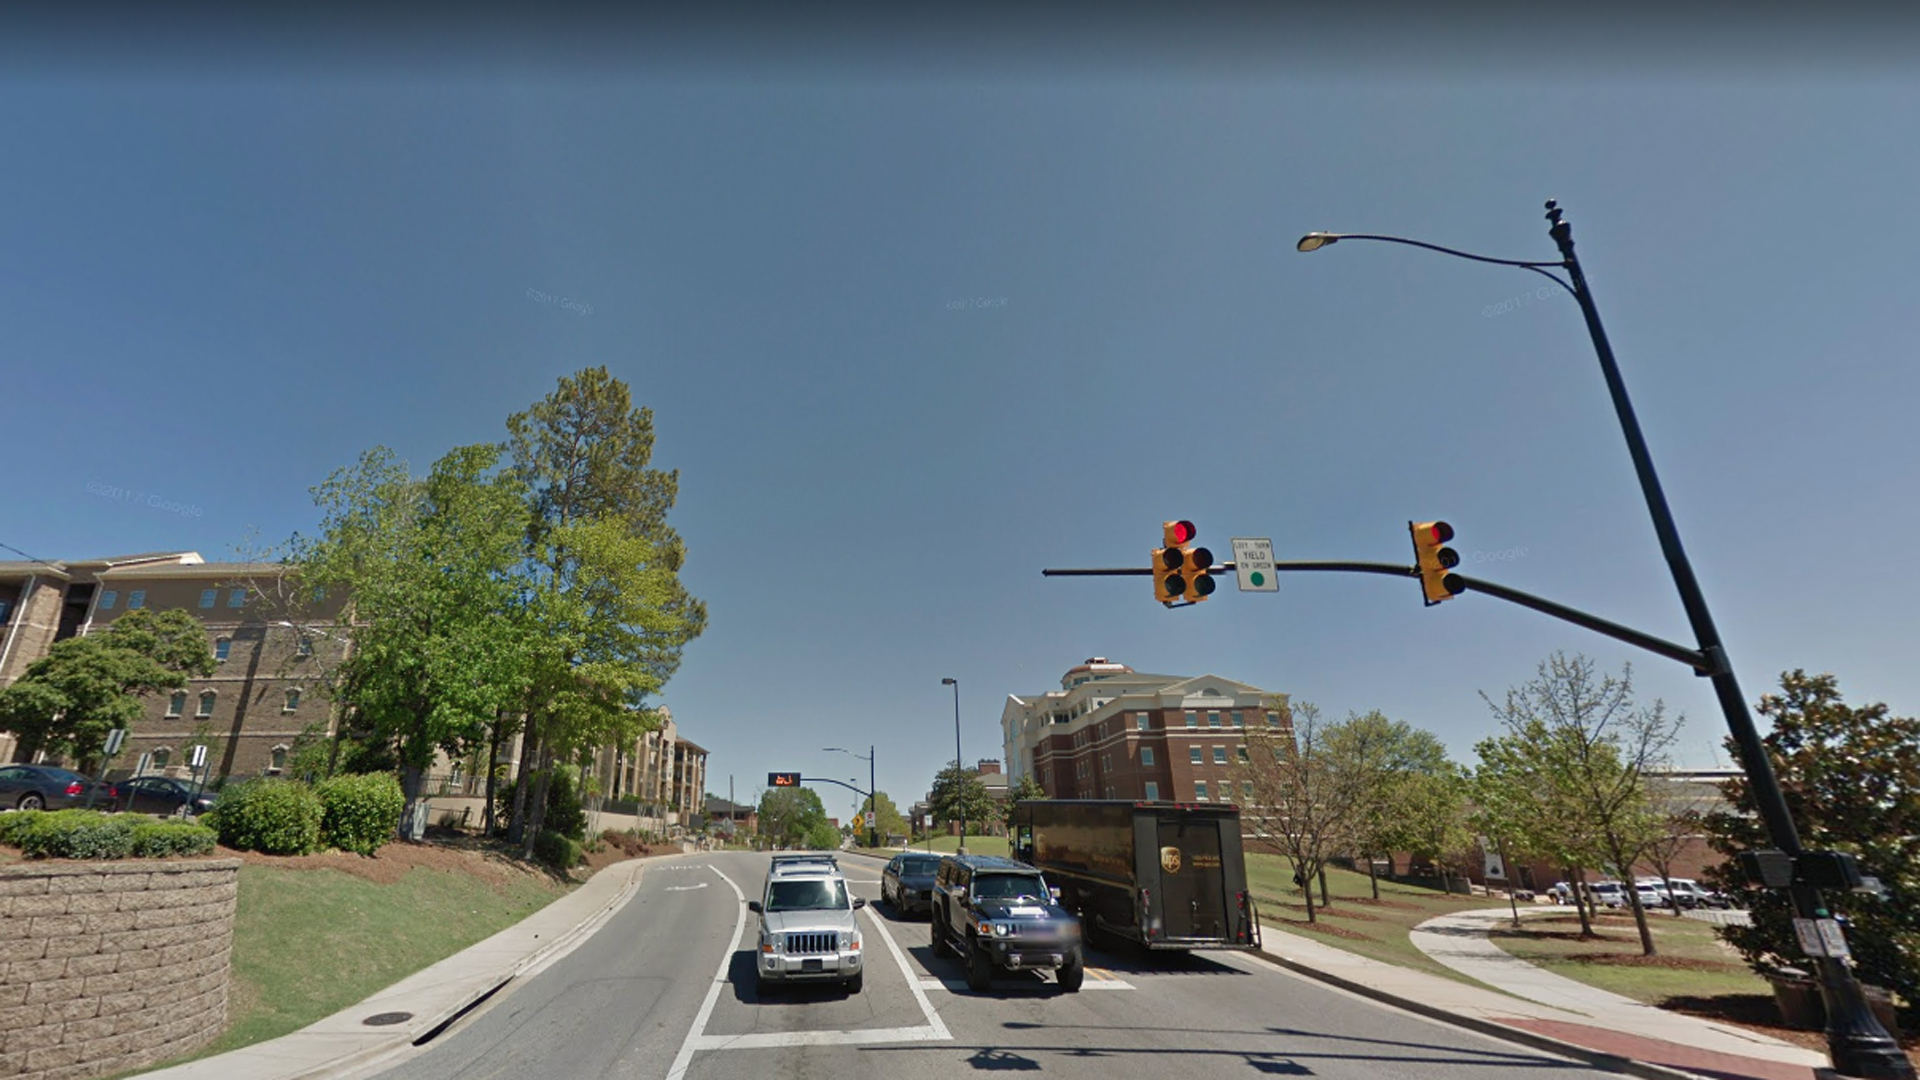 An area of West Magnolia Avenue near Auburn University in Alabama, which is near where one person was killed and fours others wounded in a shooting, is seen in this undated image. (Credit: Google Maps)